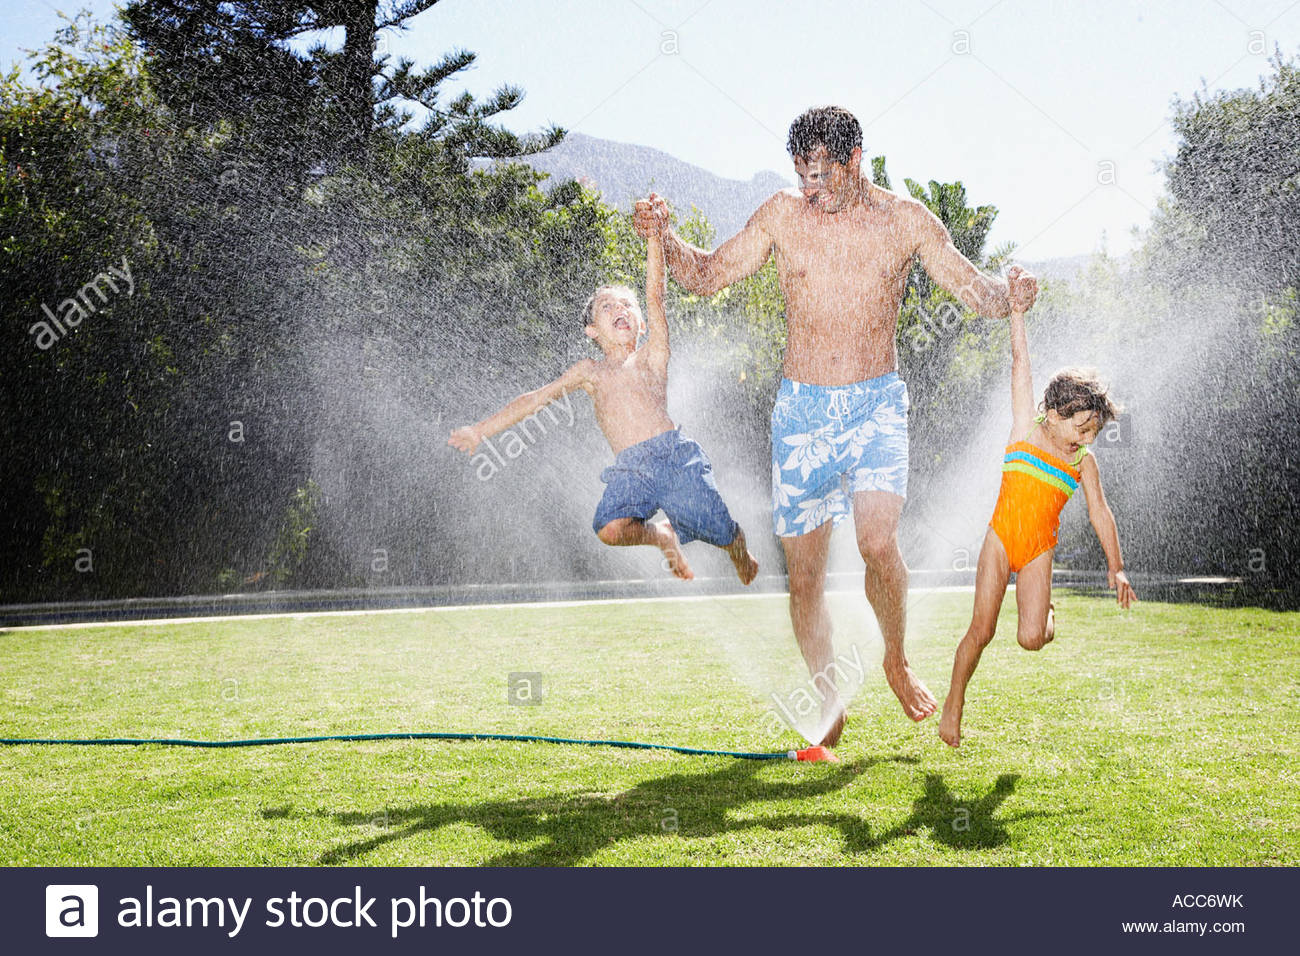 a father playing with his children in a sprinkler - Stock Image